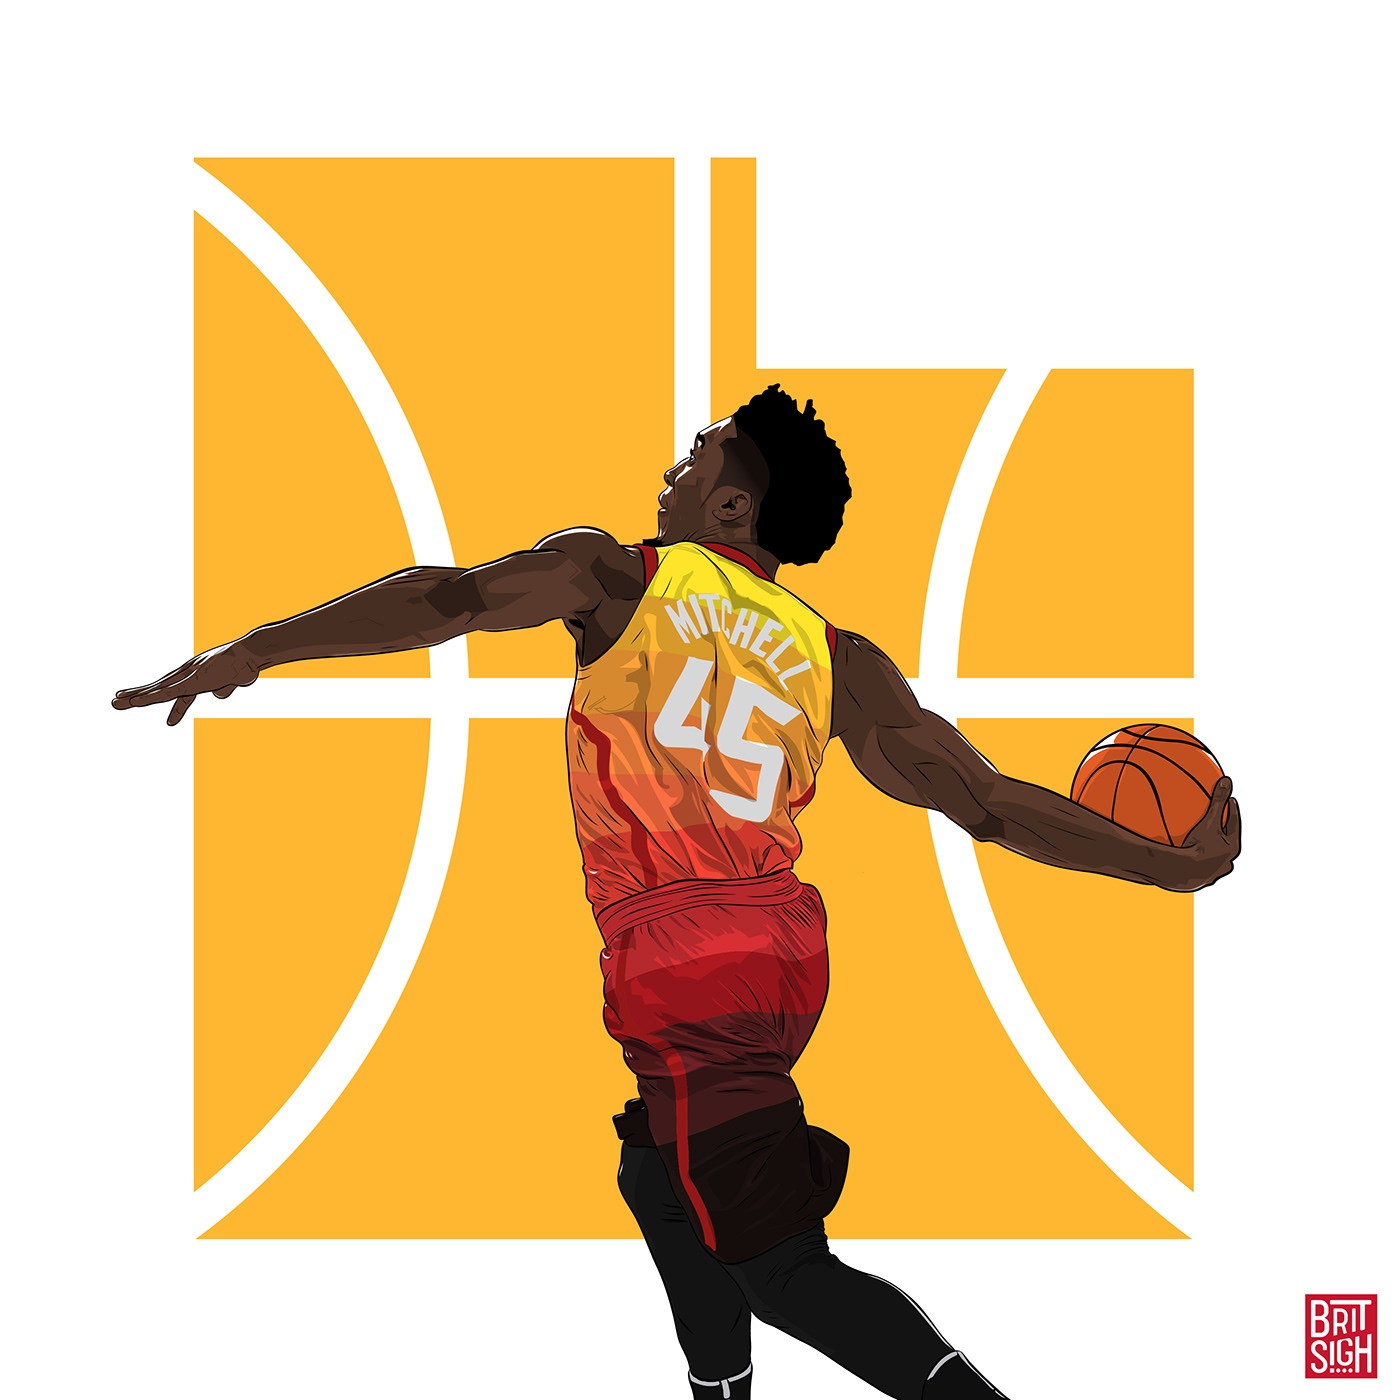 Donovan Mitchell on Behance.